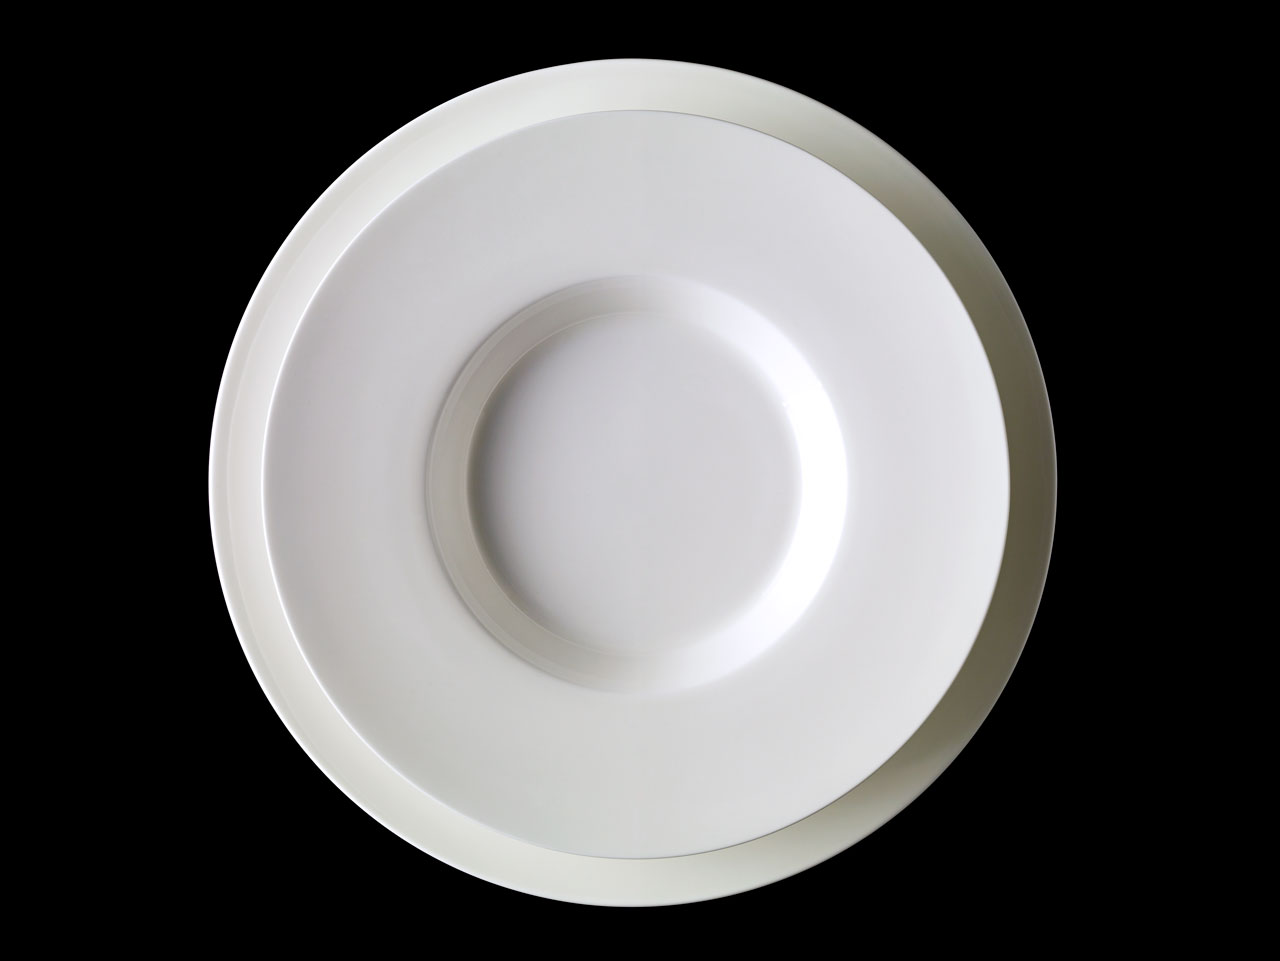 Bent Brandt - TABL white bone china S1 soup plate on S2 plate